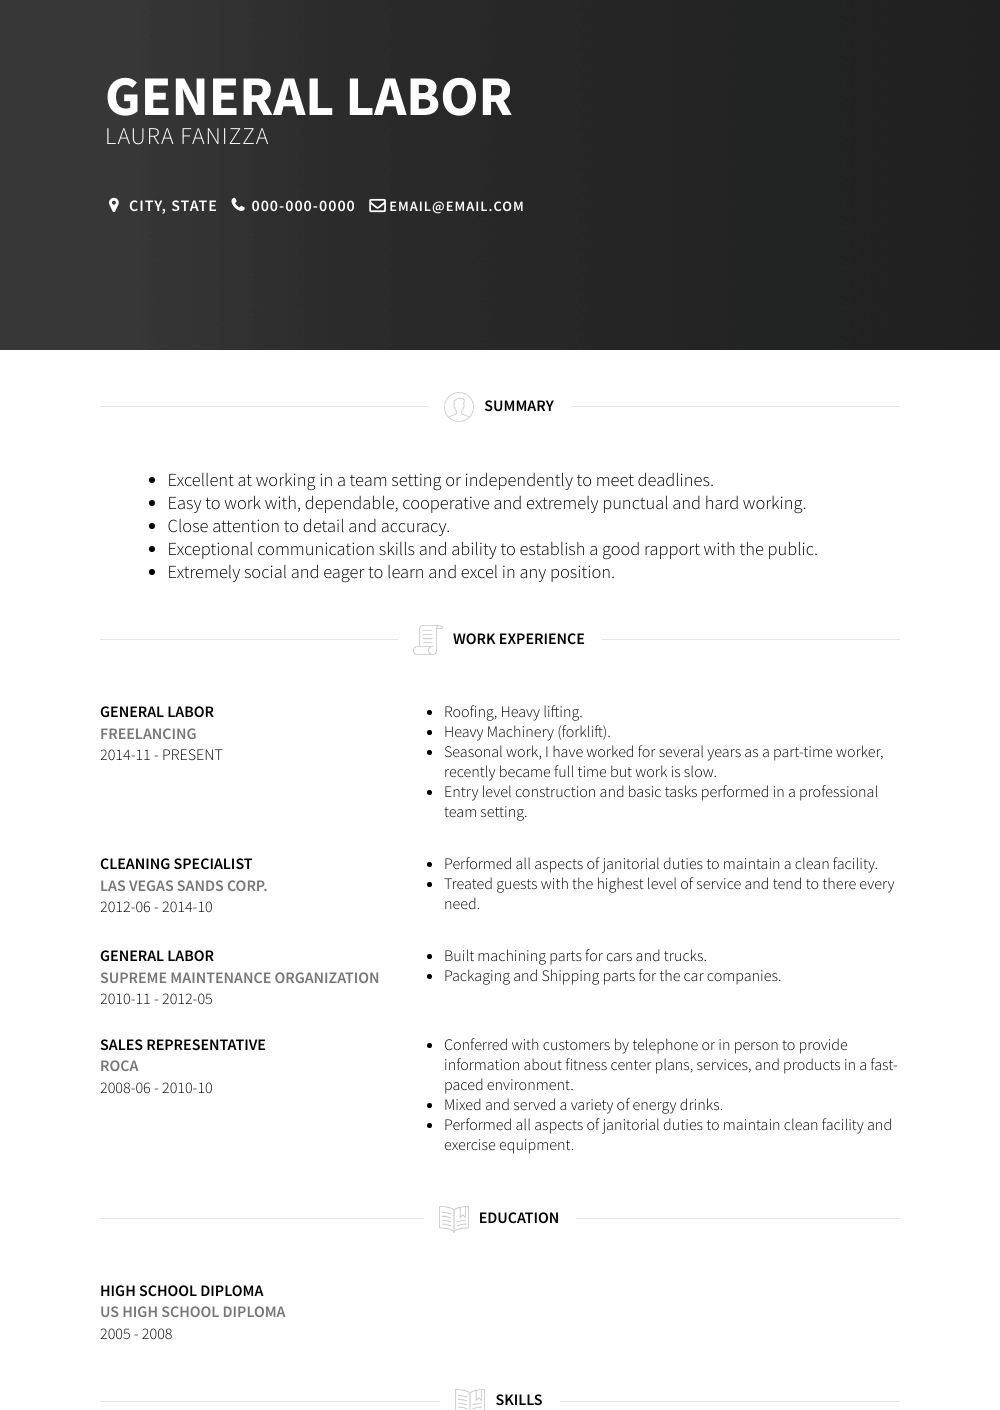 General Labor Resume Sample and Template